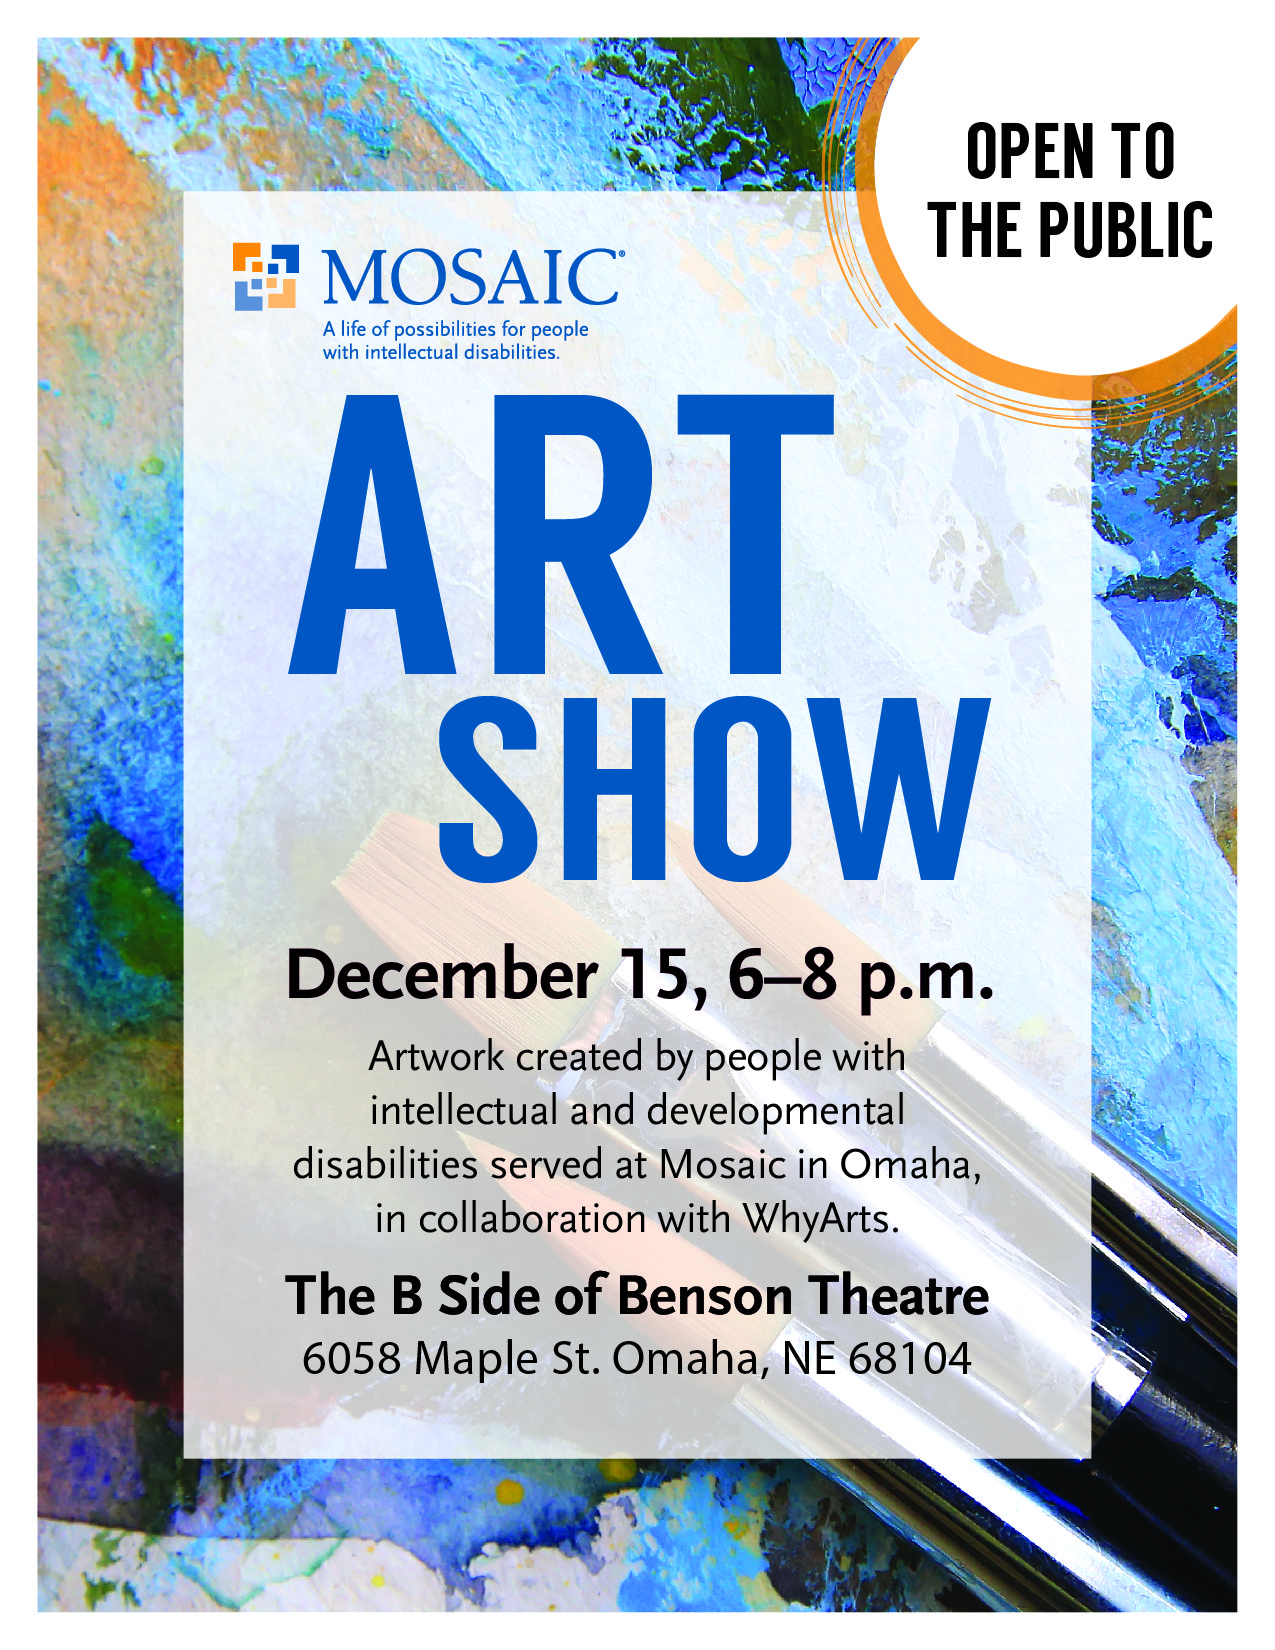 MOSAIC Art Show Dec  15 - Benson Theatre